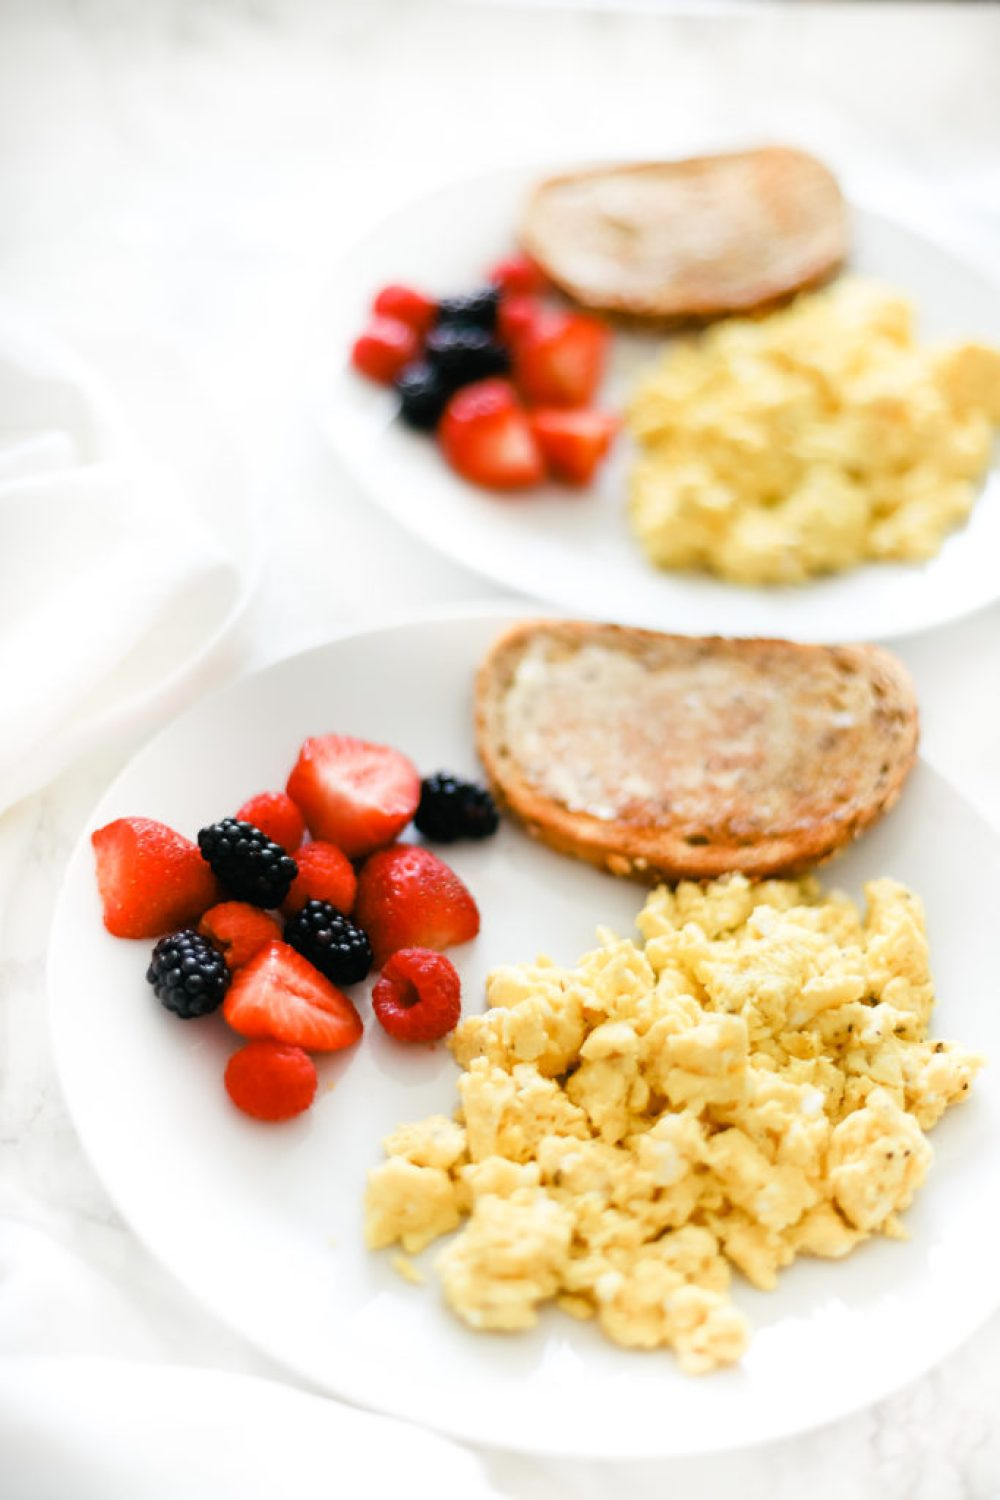 These perfect fluffy scrambled eggs make for a healthy, quick and easy breakfast every time. Naturally low in carbs, keto, and gluten-free. Breakfast | Brunch | Cooked Eggs | Keto Eggs | One Pan Breakfast | Creamy Eggs | Healthy | Weight Loss | How to Scramble Eggs | The Best Scrambled Egg Recipe | Family Friendly Recipe | Traditional Eggs | Egg Recipes |